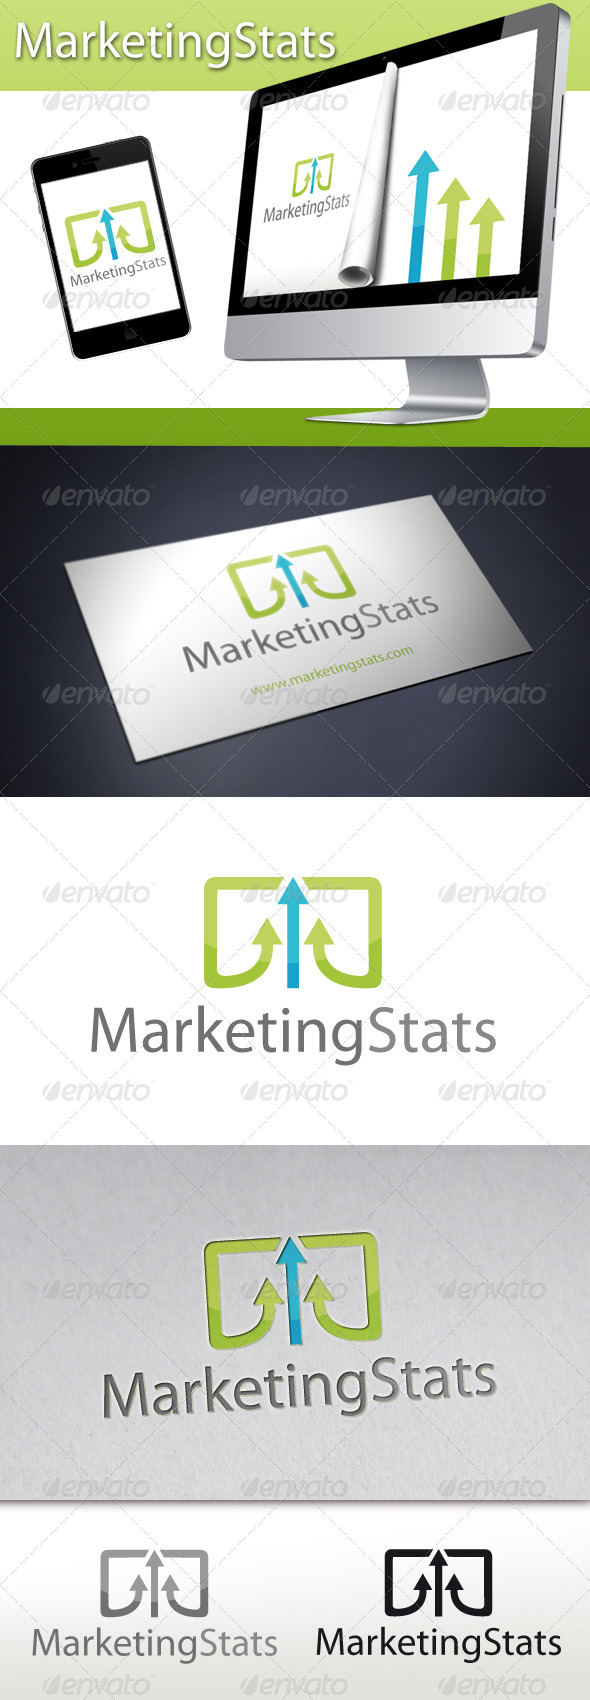 Marketing Stats Logo - Symbols Logo Templates